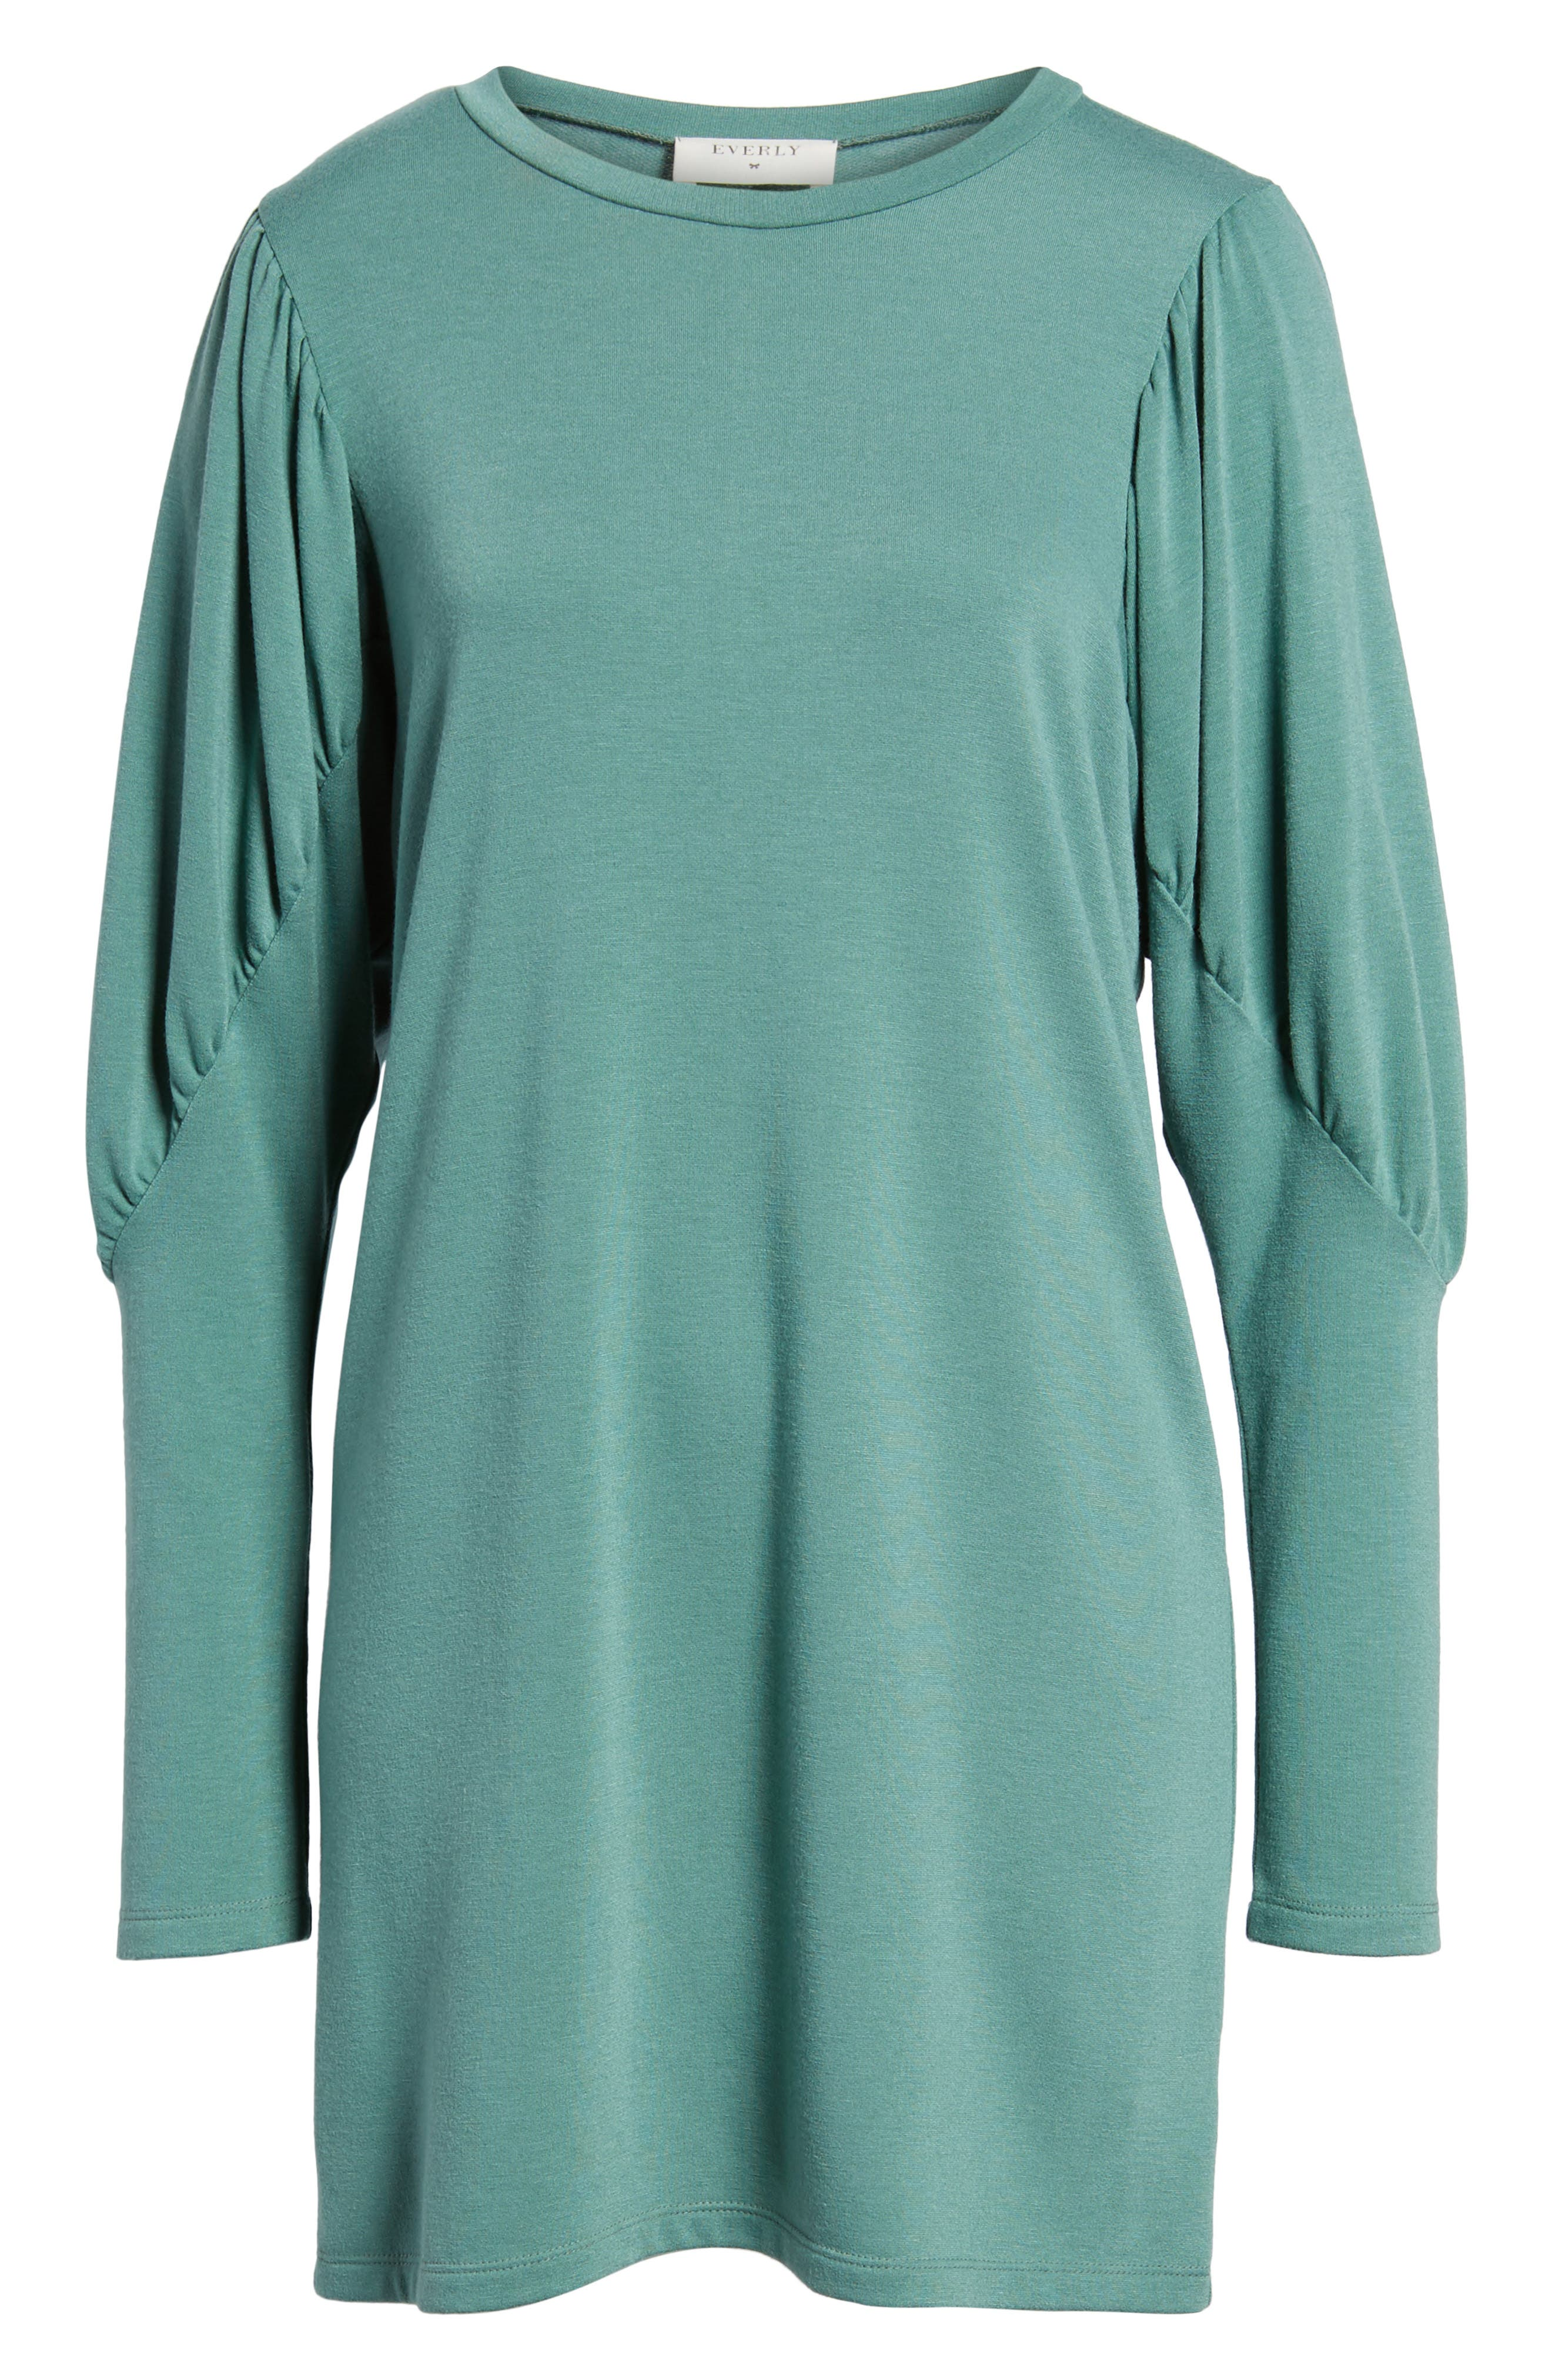 Alternate Image 1 Selected - Everly Statement Sleeve Sweatshirt Dress